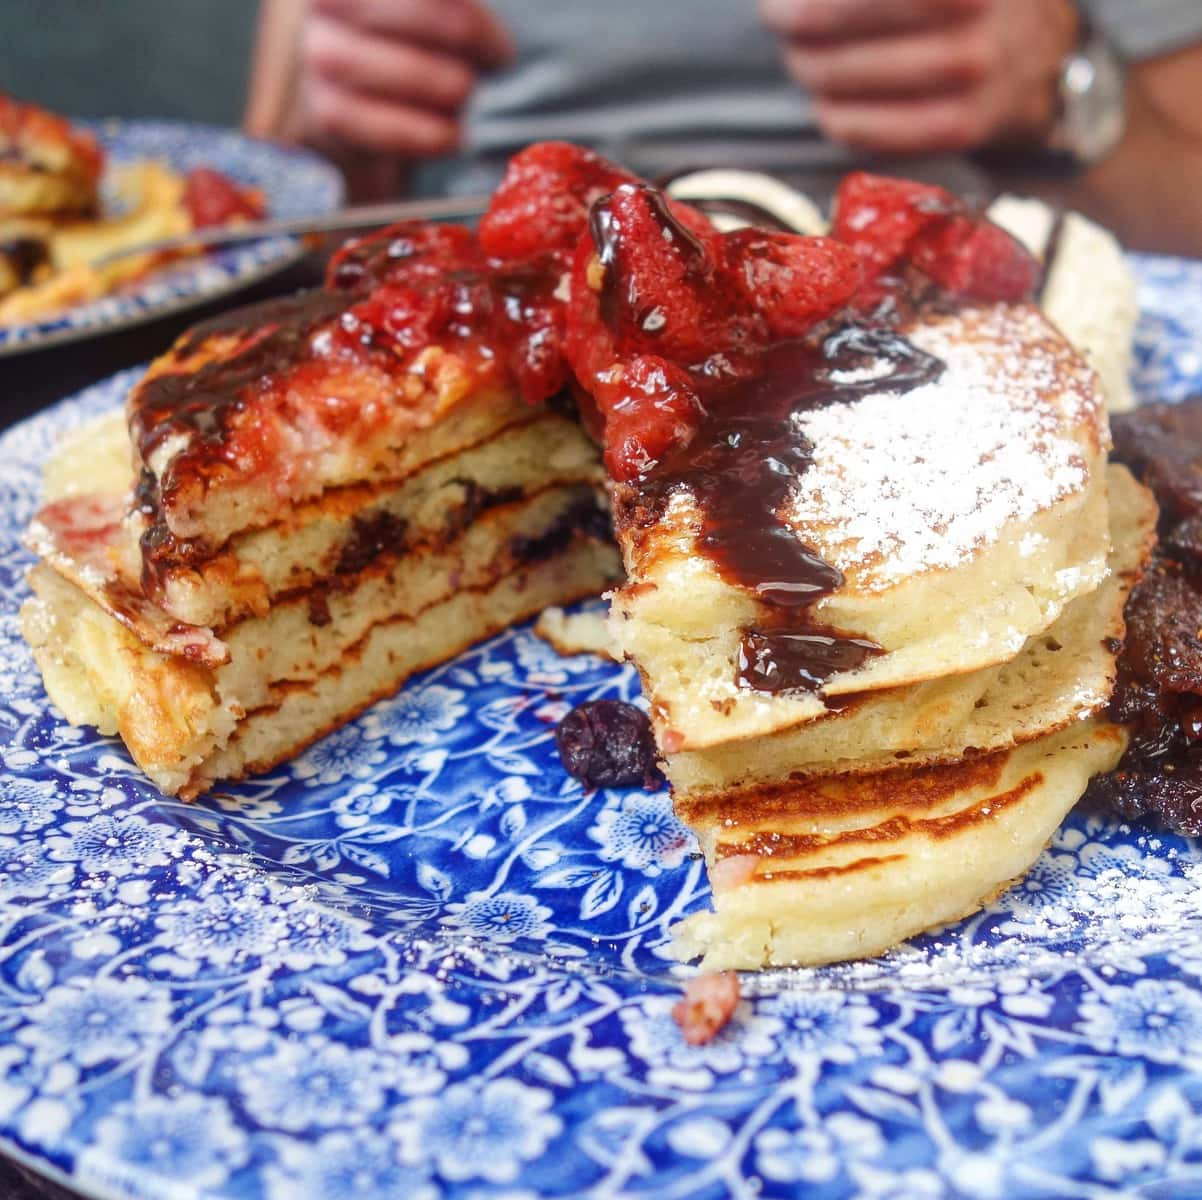 Sugar rush pancakes, Boondocks - Where To Eat London's Most Delicious Pancakes